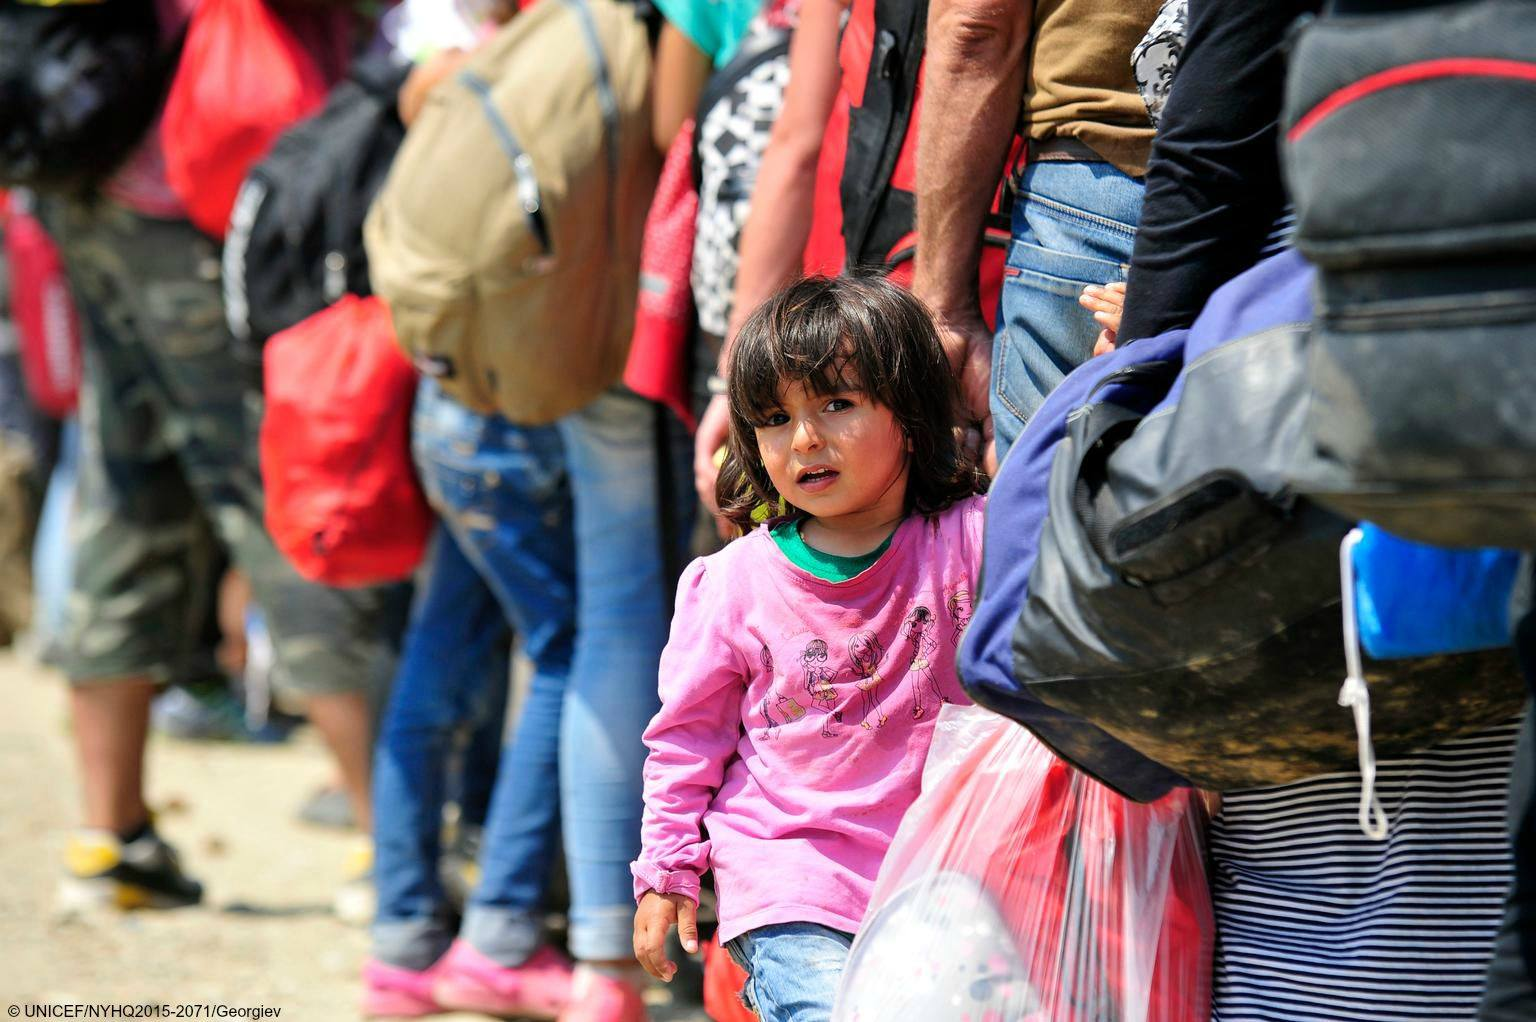 RT @UNICEF: Over 4.5m children in 5 countries uprooted by conflicts & instability http://t.co/nXNdGsqPWC  #refugeecrisis #Syria http://t.co…